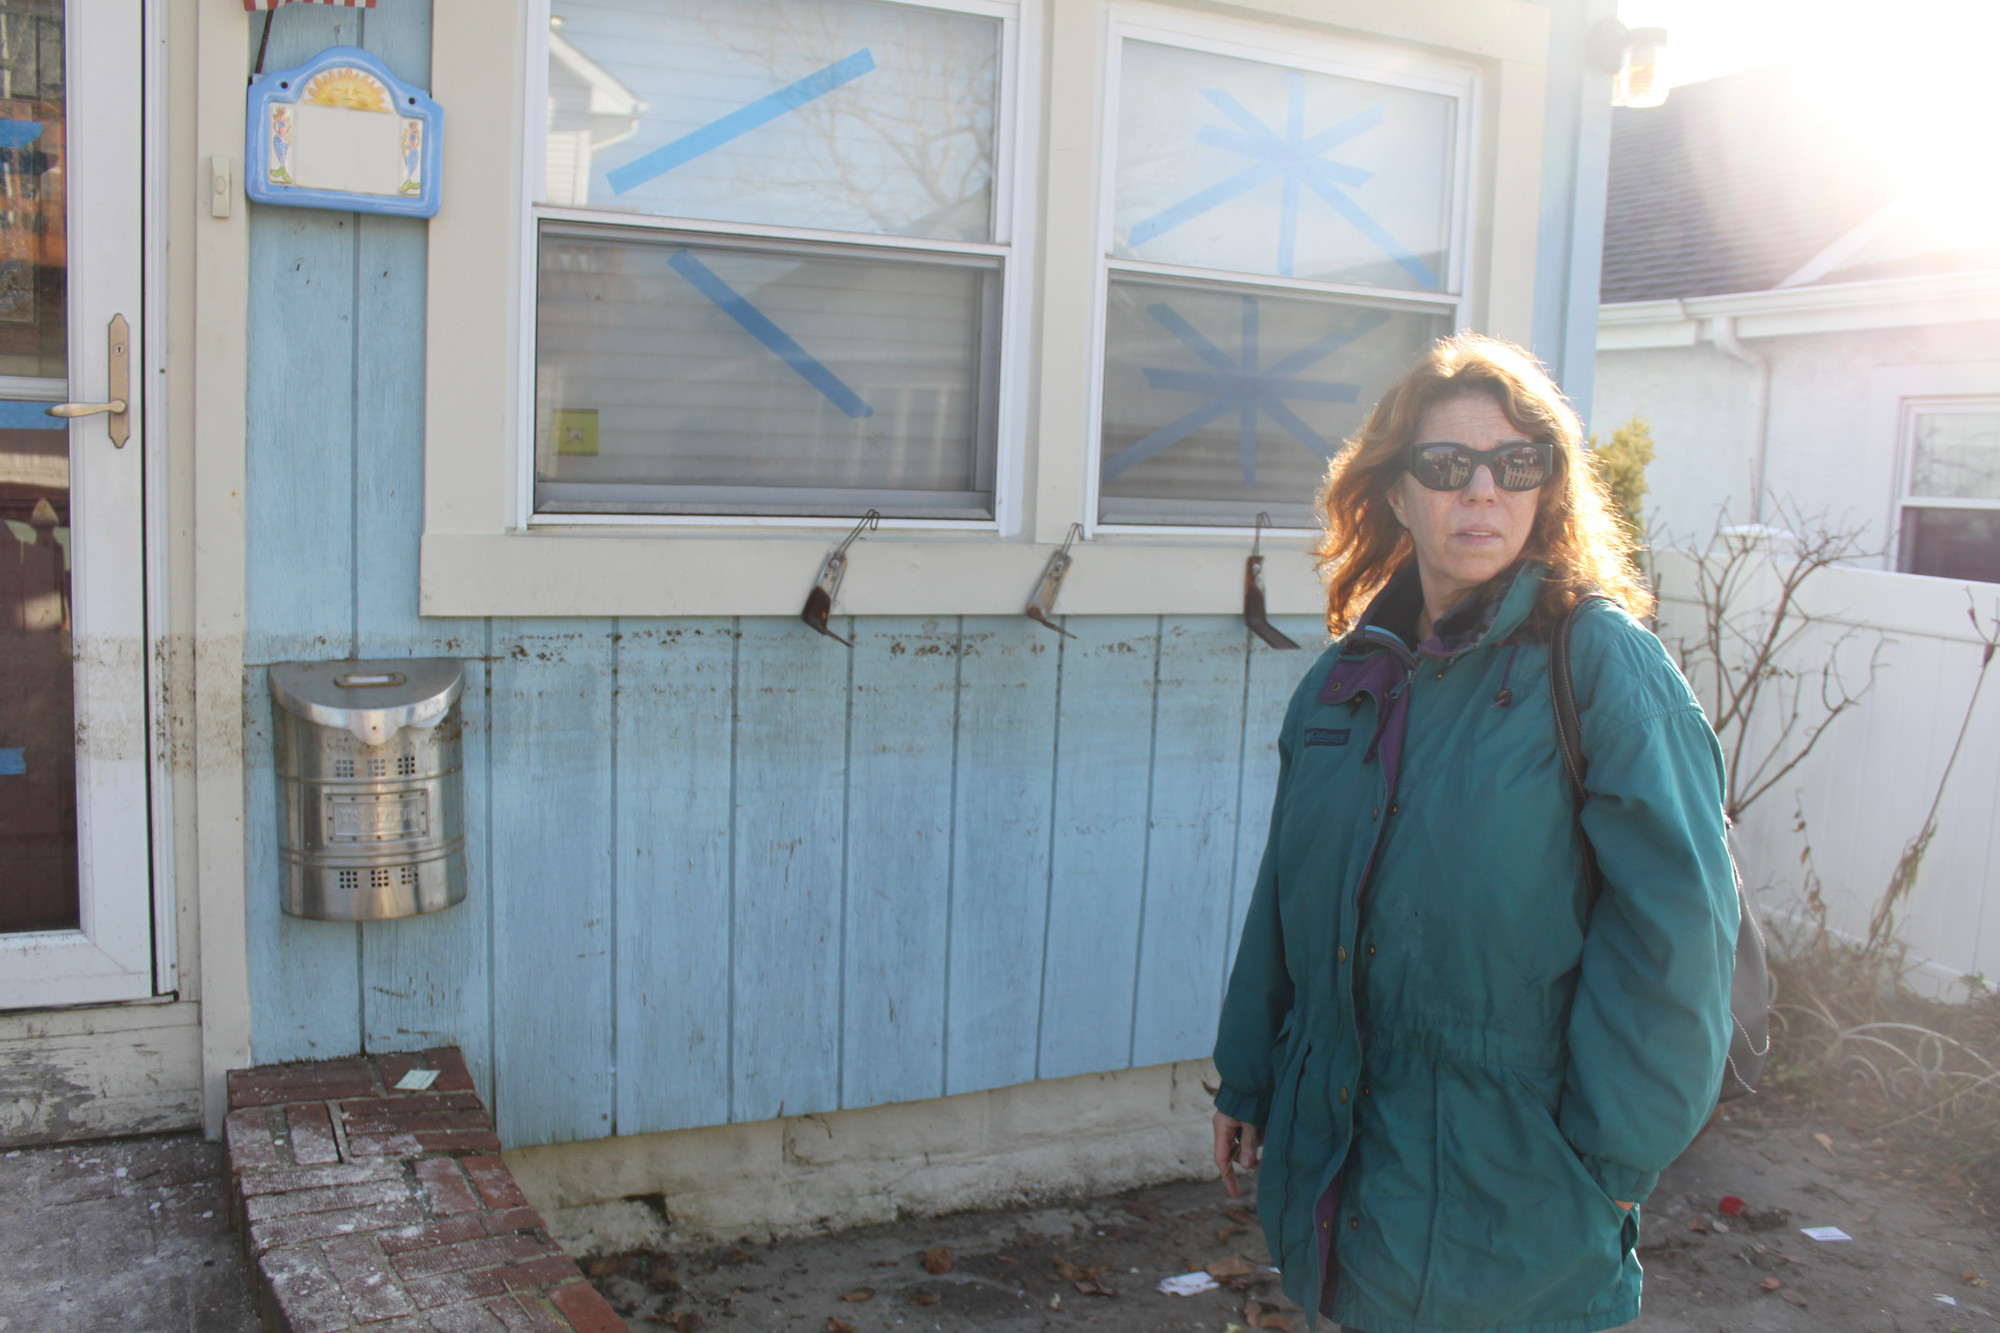 Resident Anita Daly, outside her New Hampshire Street home, said that she has yet to return because of federal funding hurdles.